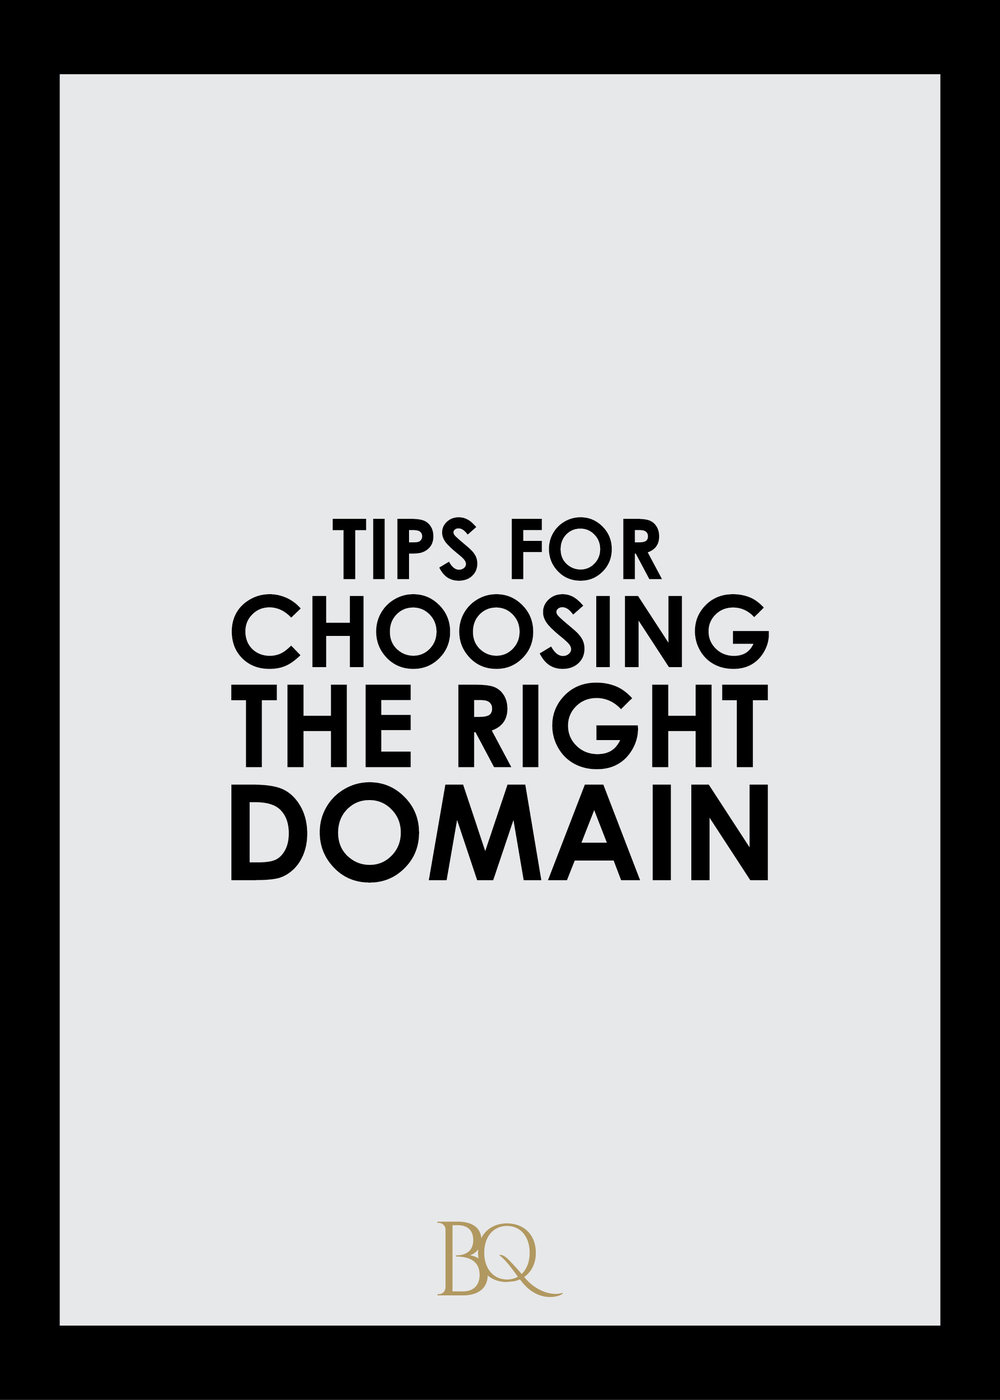 Learn some tips on how to choose the right domain